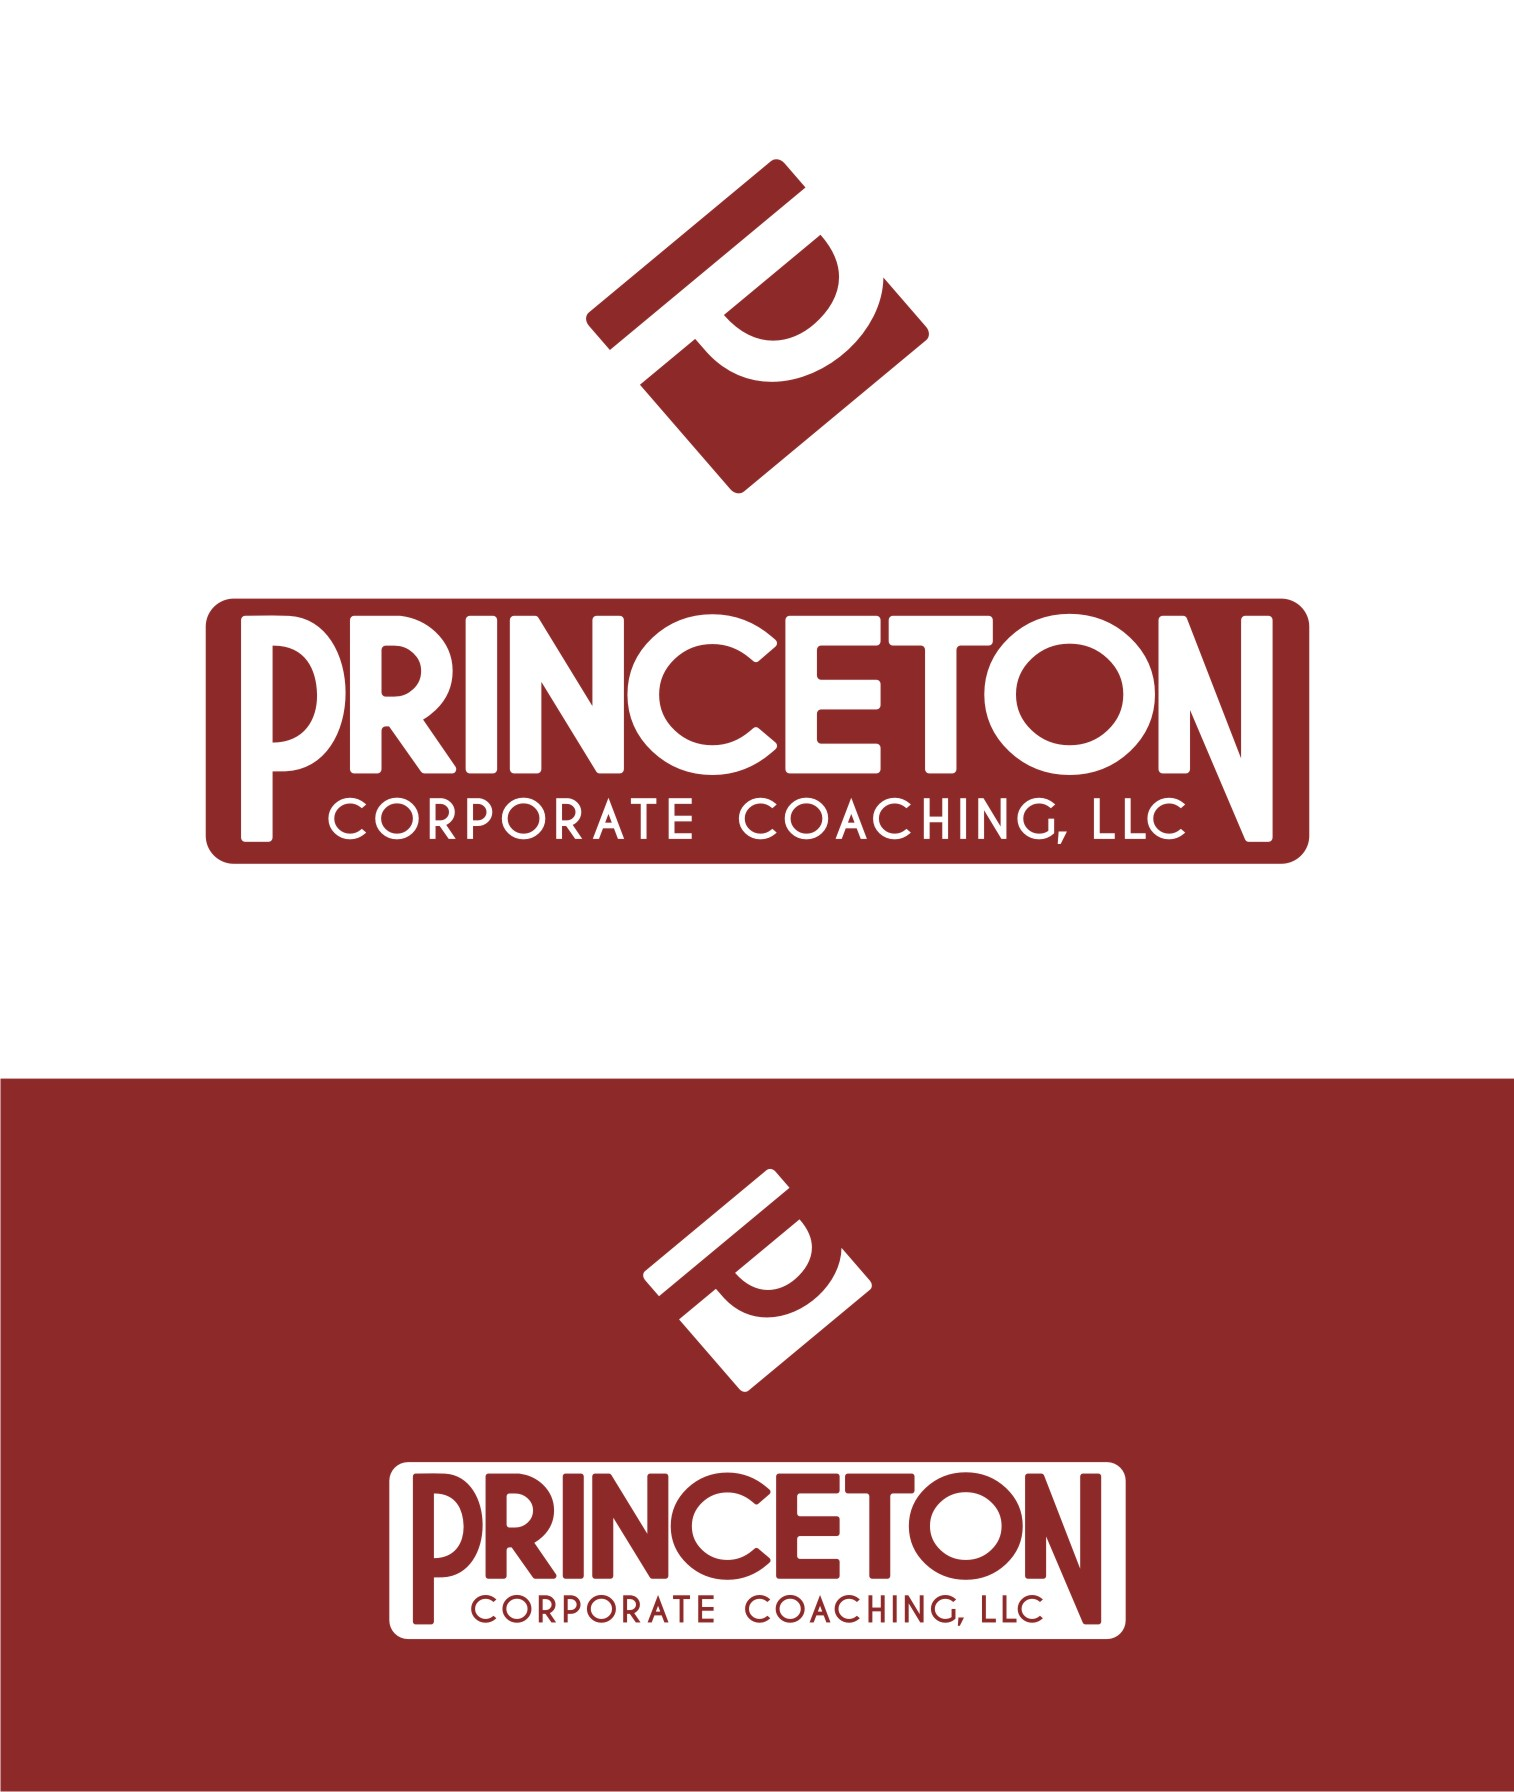 Logo Design by Private User - Entry No. 131 in the Logo Design Contest Unique Logo Design Wanted for Princeton Corporate Coaching, LLC.